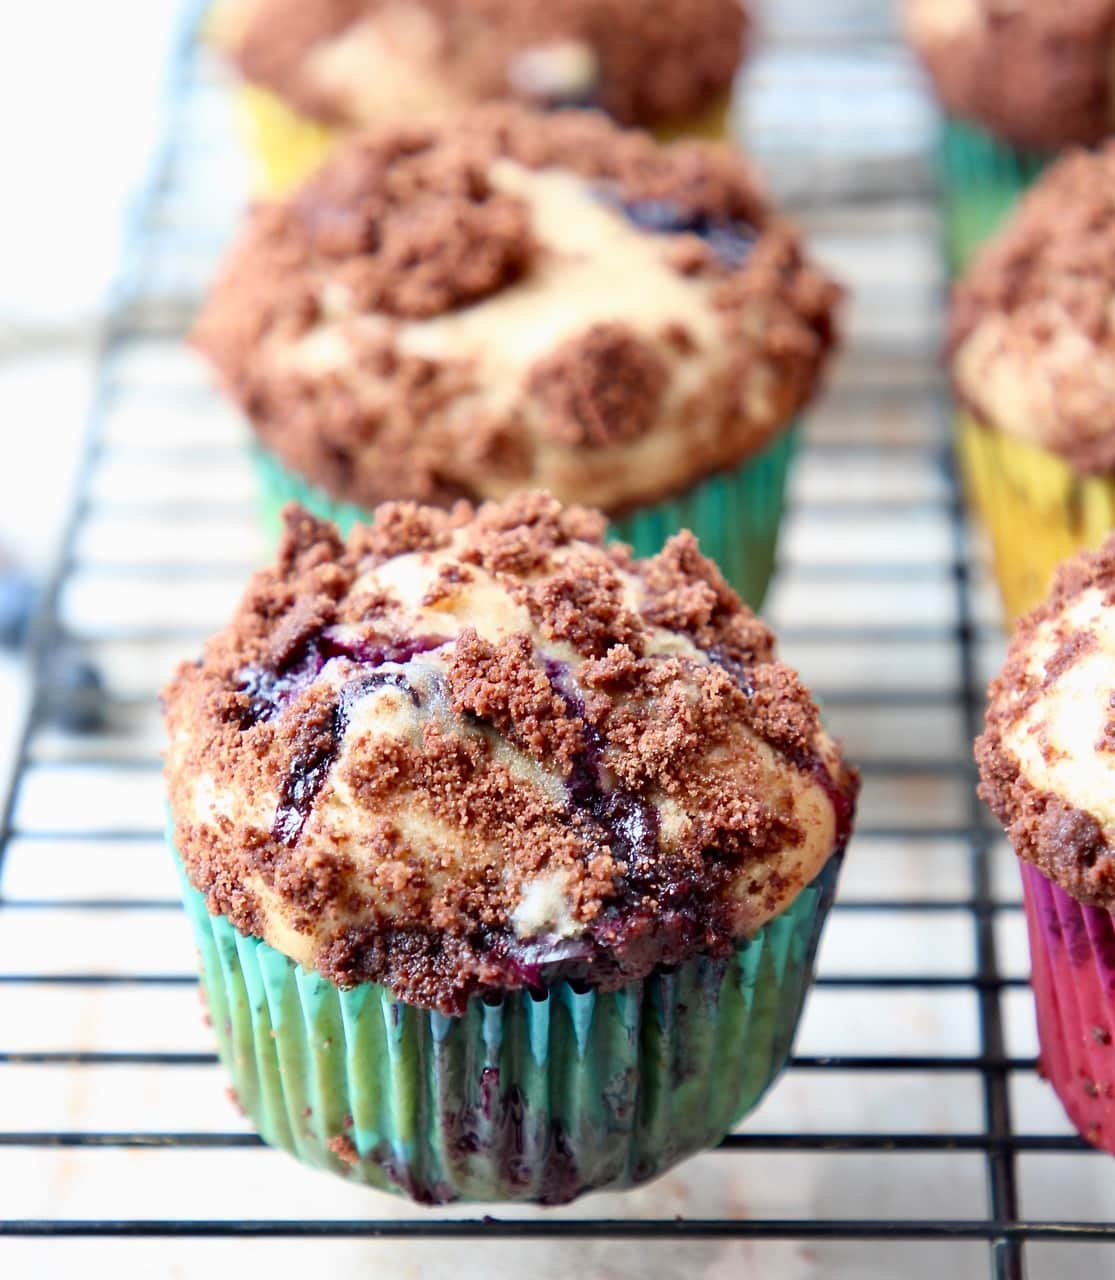 Blueberry Cream Cheese Muffins with Chocolate Crumble